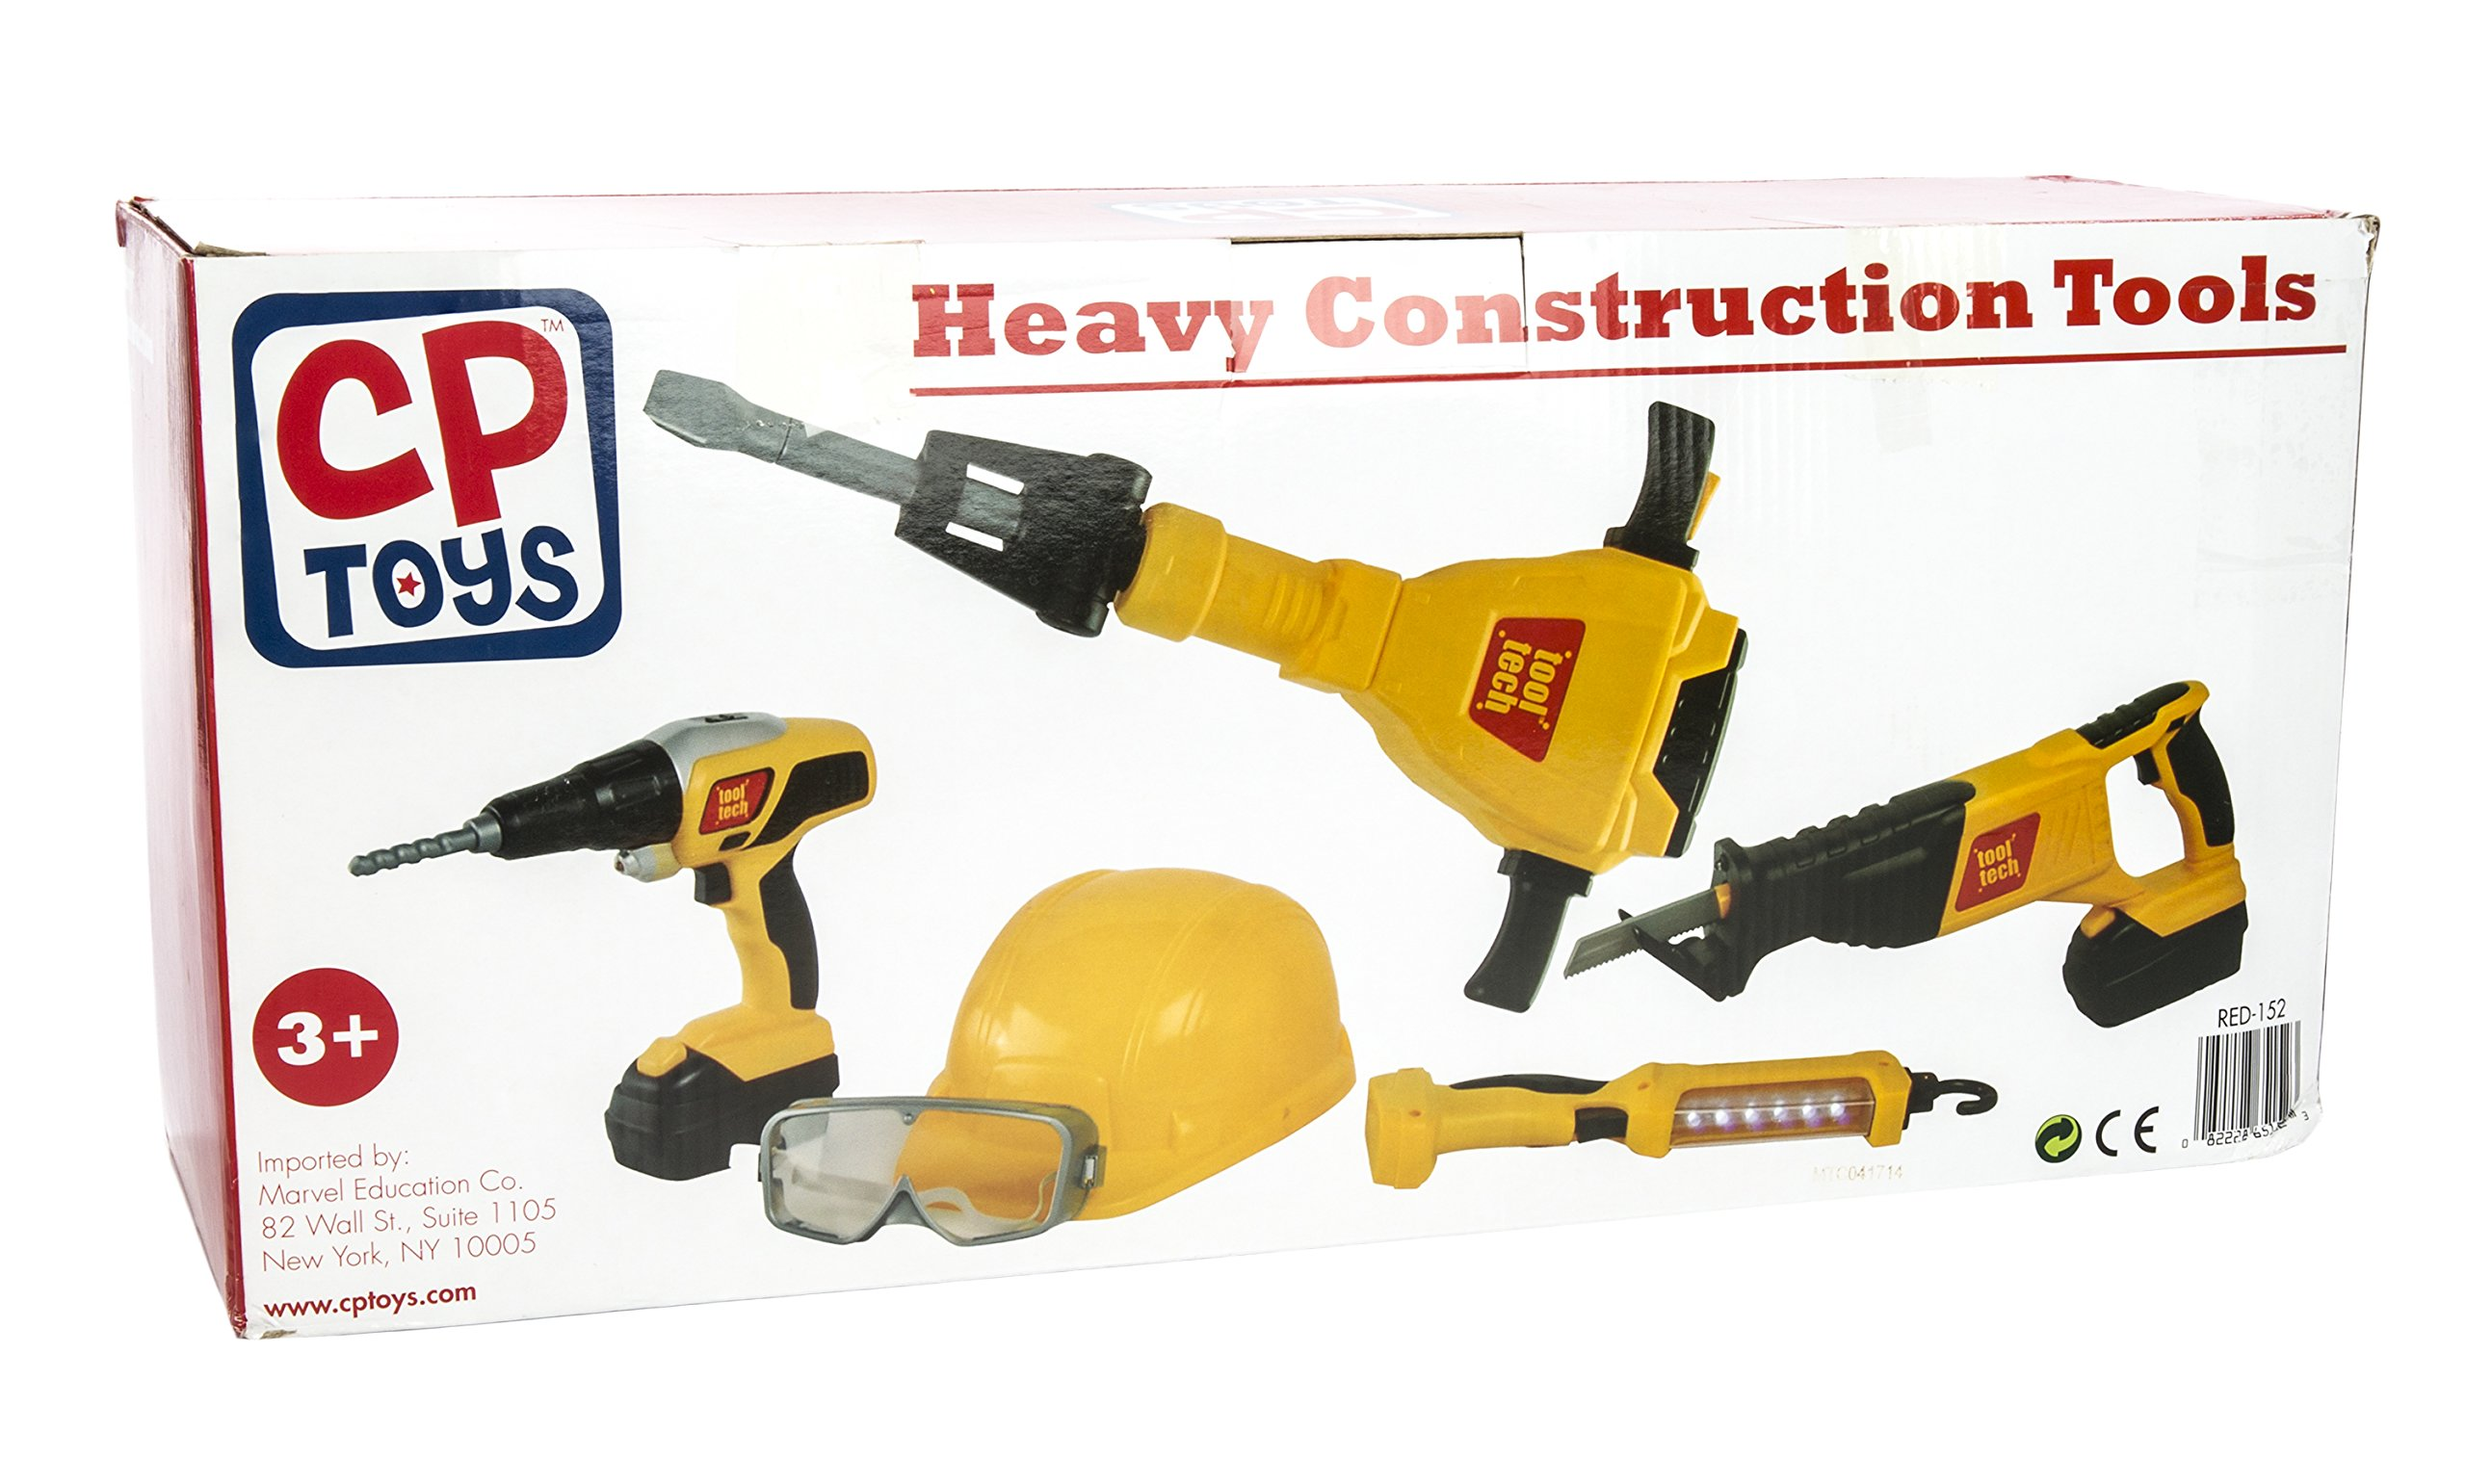 CP Toys 10 pc. Pretend Play Heavy Construction Tools with Realistic Sounds and Action